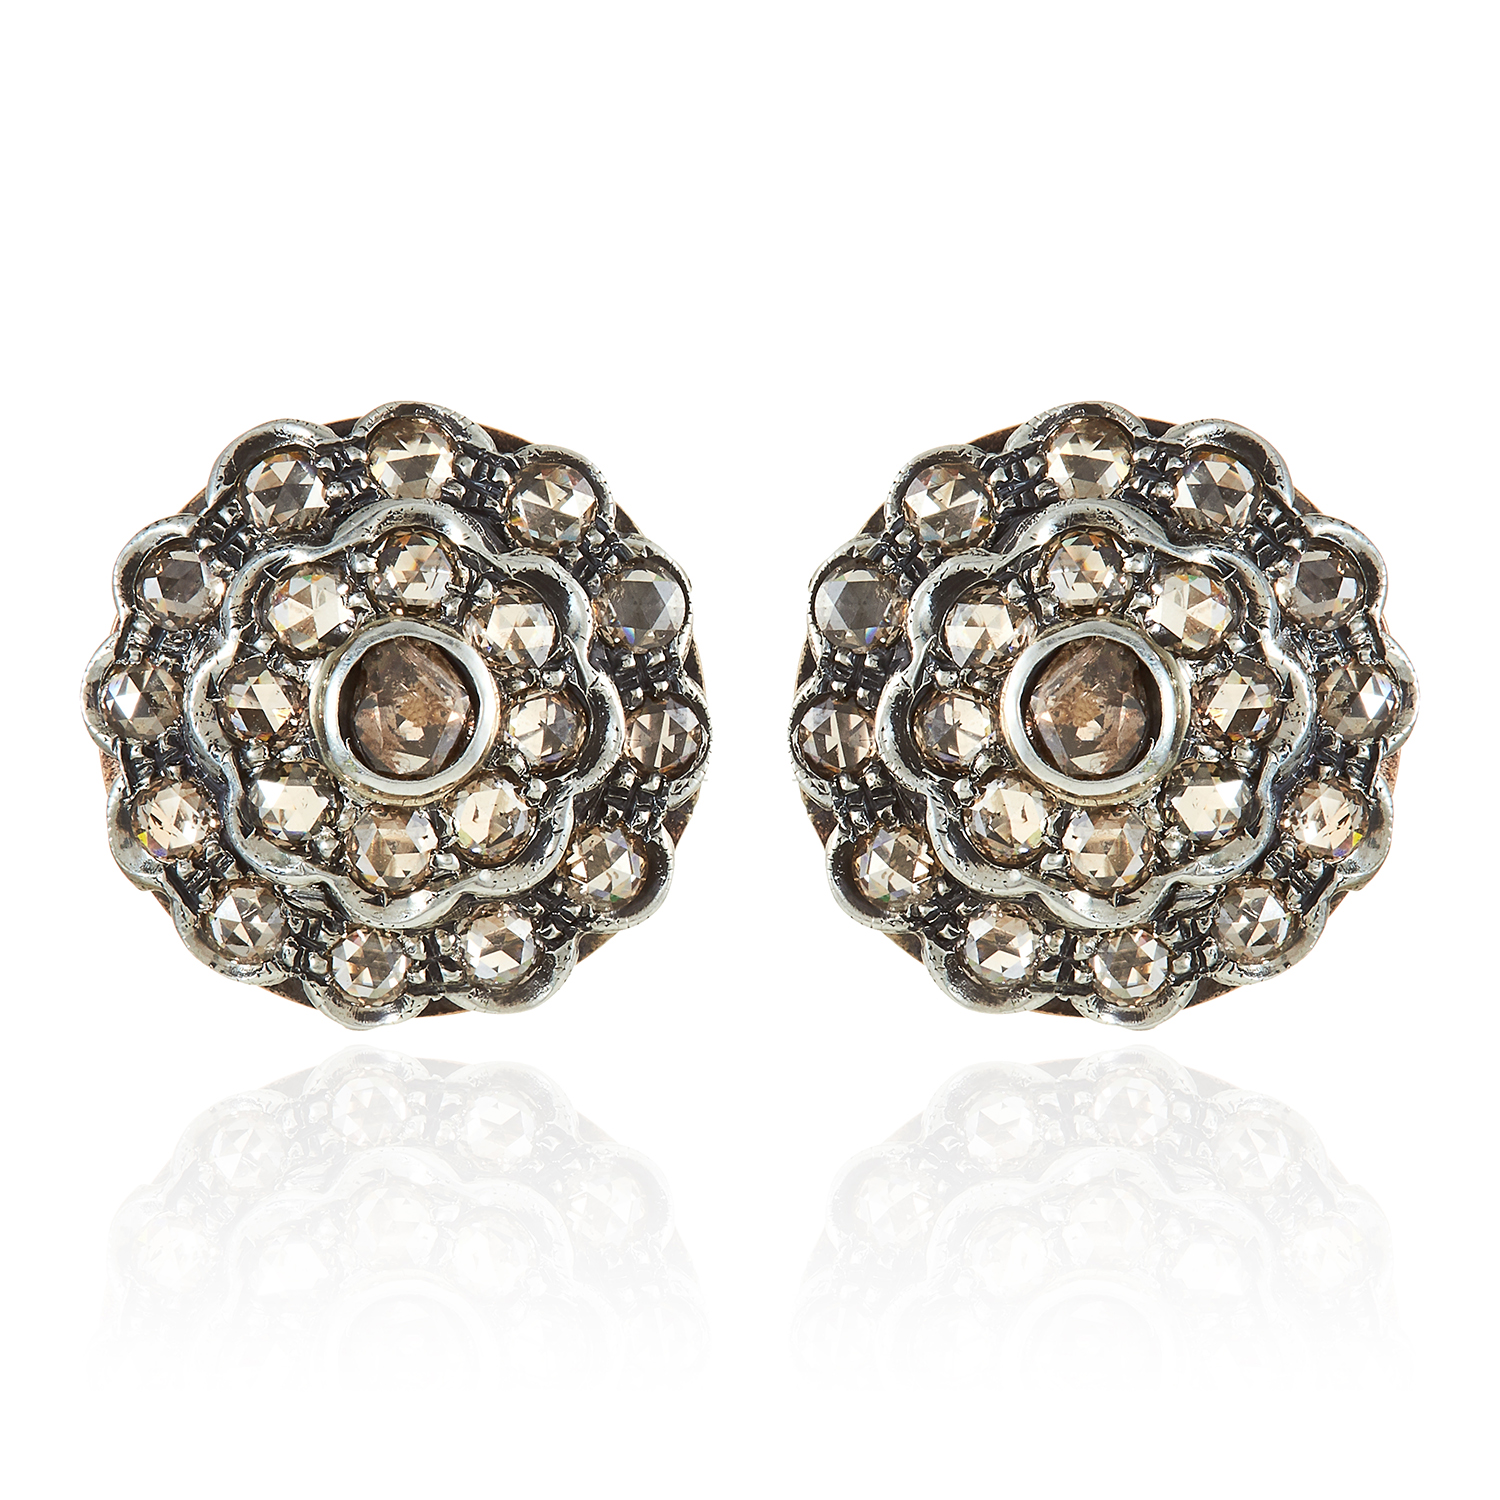 Los 307 - A PAIR OF DIAMOND CLUSTER EARRINGS in yellow gold and silver, formed of concentric rows of rose